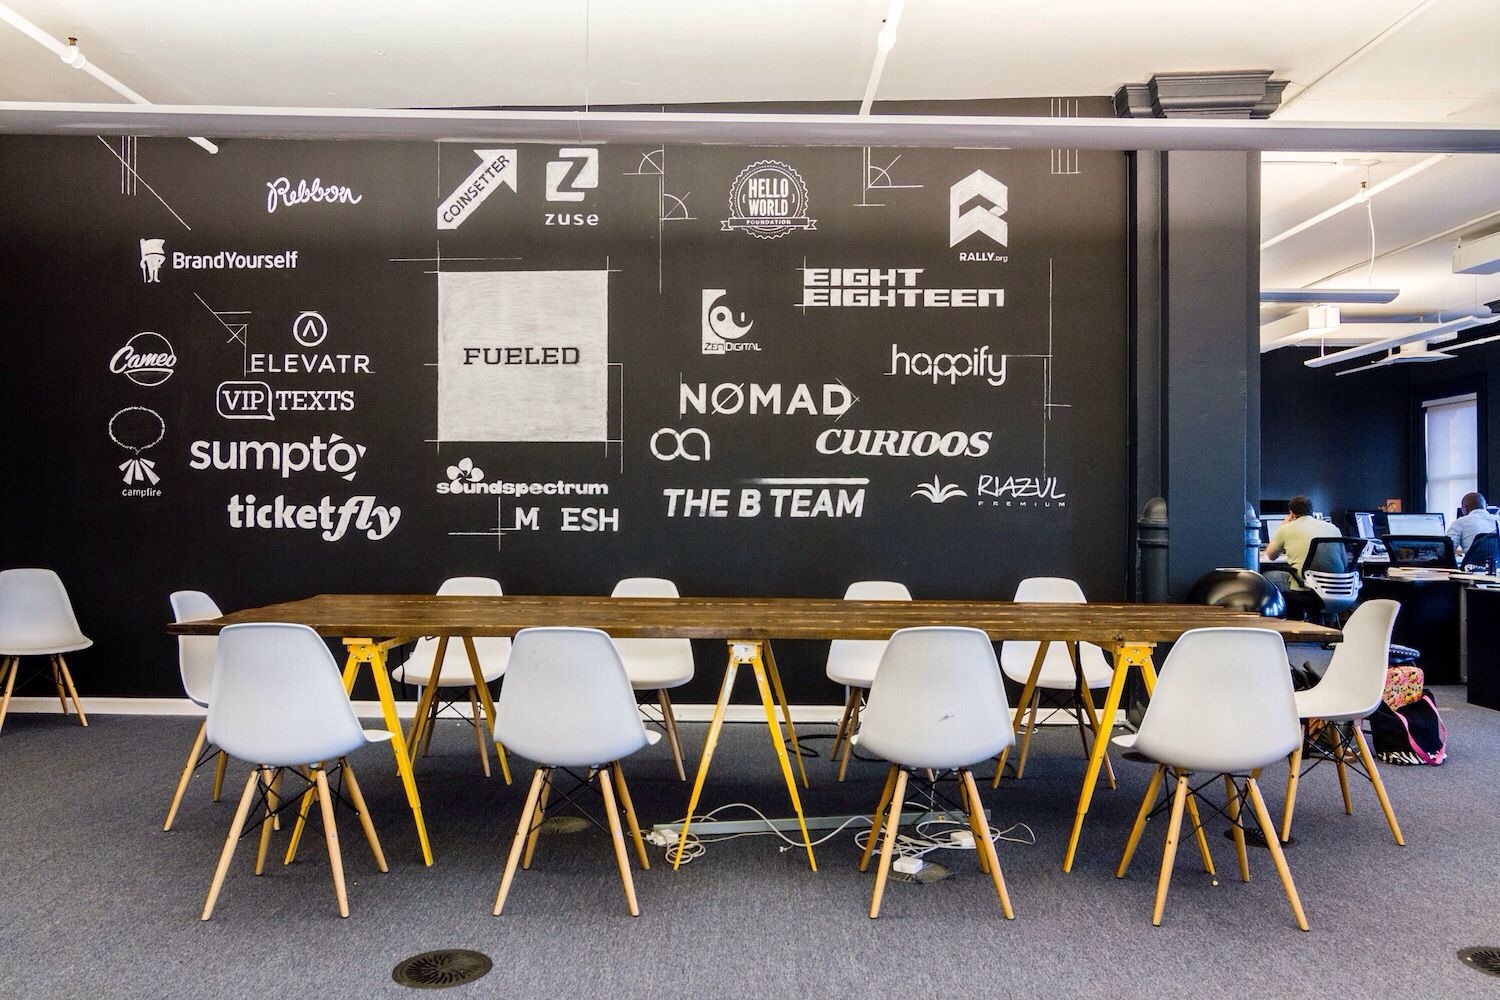 Coworking Space. Sponsorship Wall And Sawhorse Table. Great Pictures